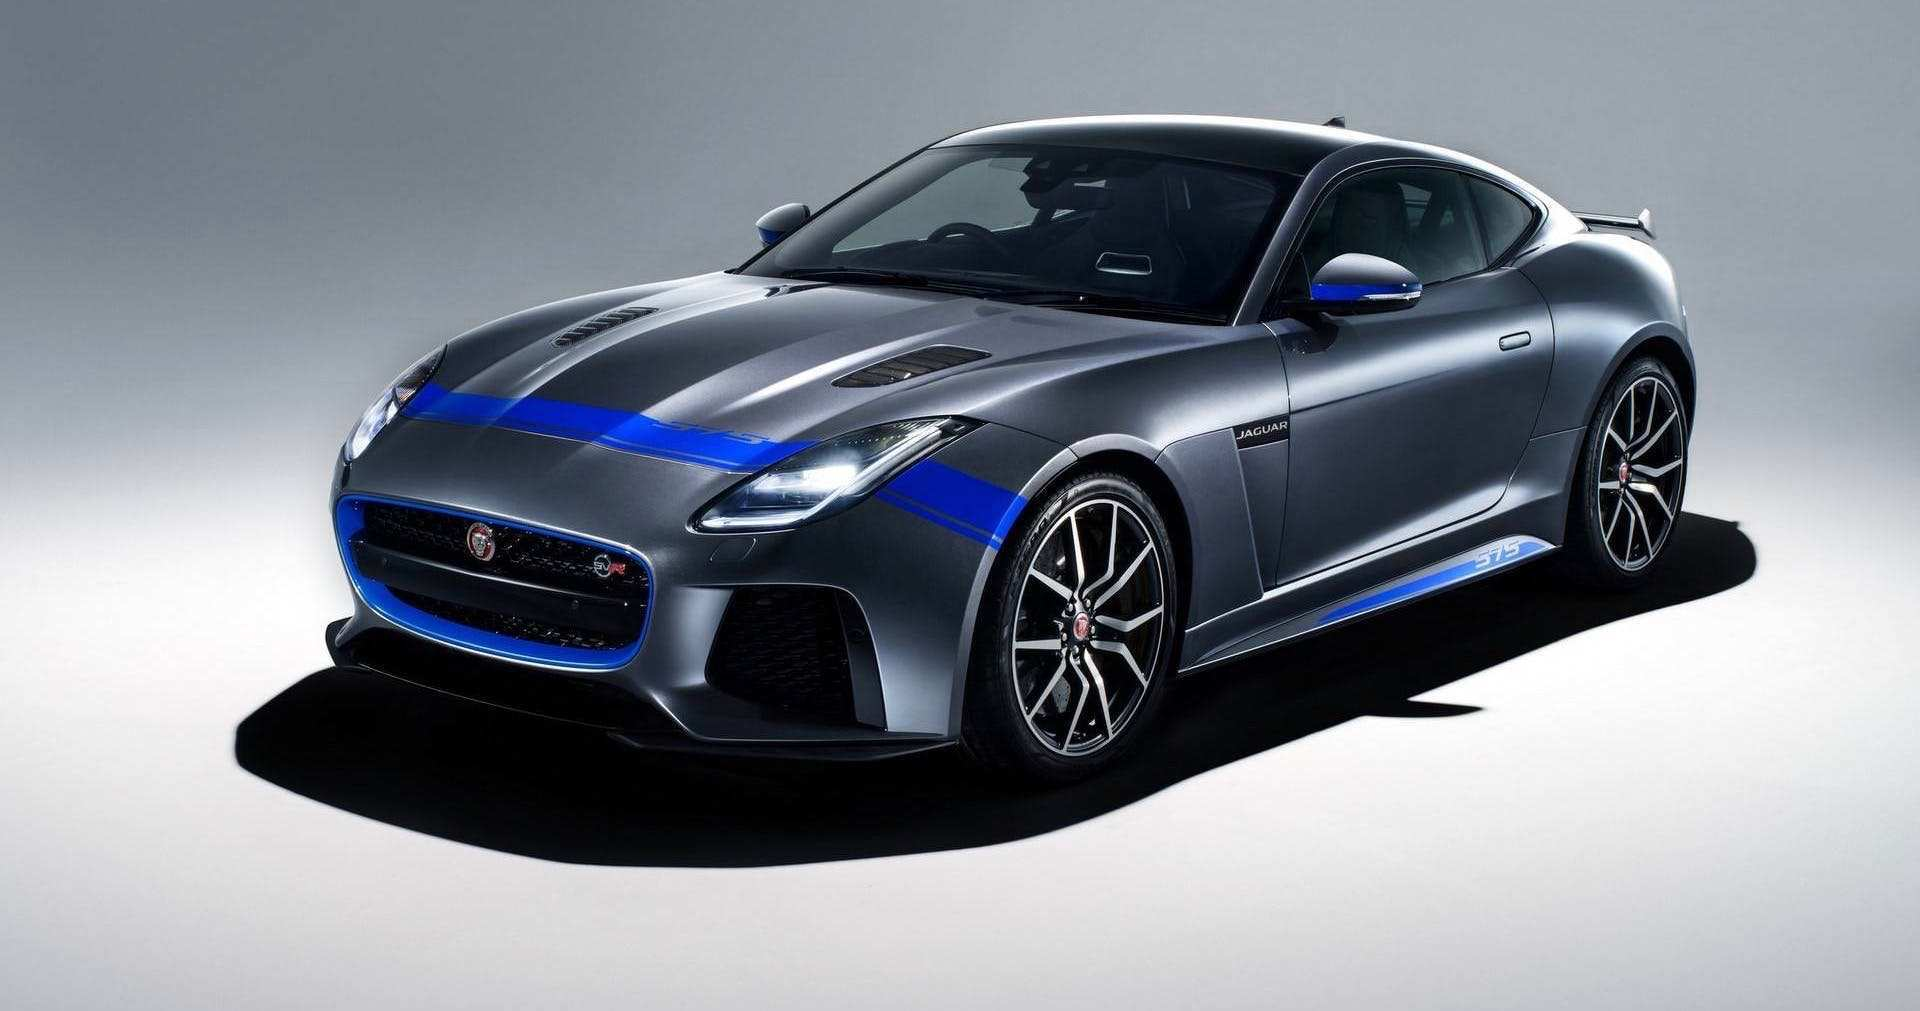 34 The Jaguar F Type 2020 Style for Jaguar F Type 2020